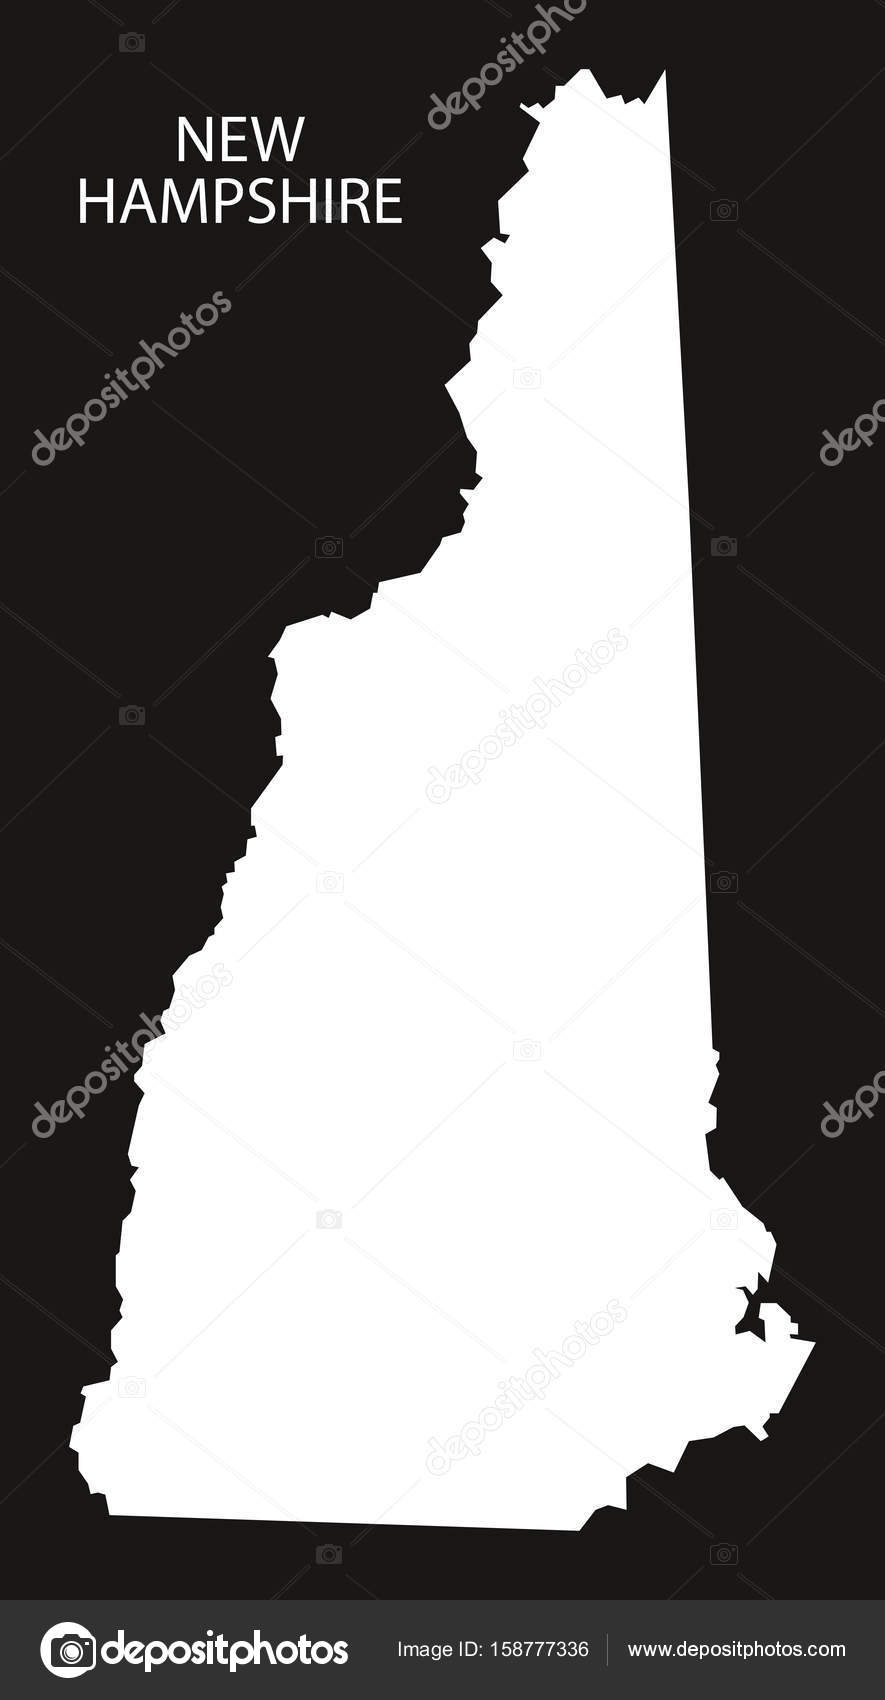 New Hampshire Usa Map Black Inverted Silhouette Stock Vector